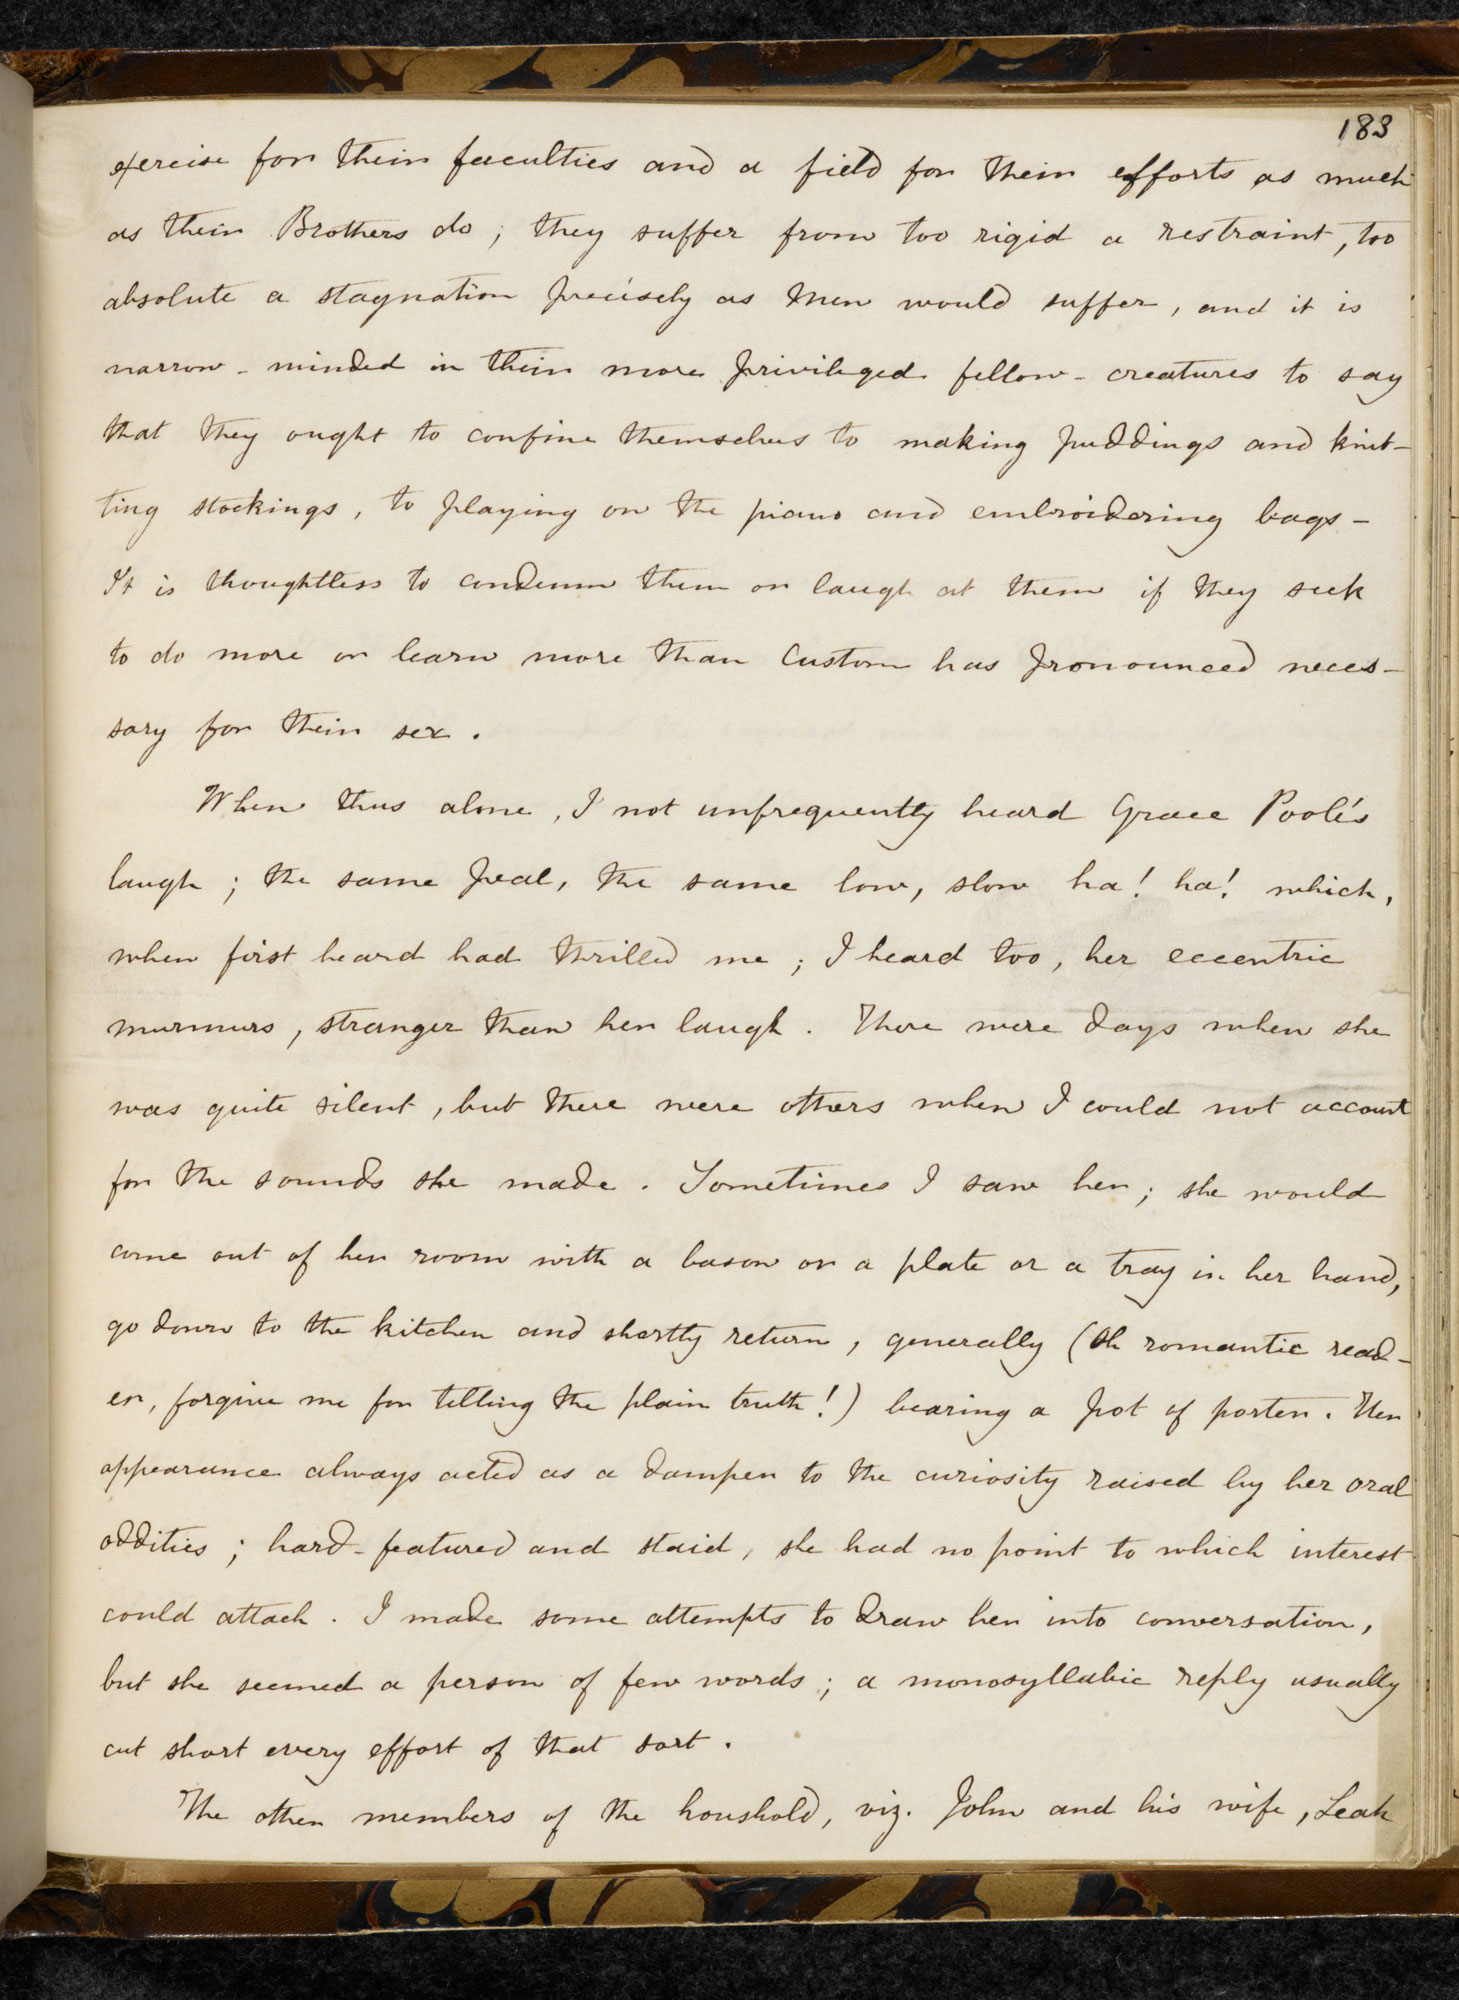 Fair copy manuscript of Charlotte Brontë's Jane Eyre [folio: 183r]